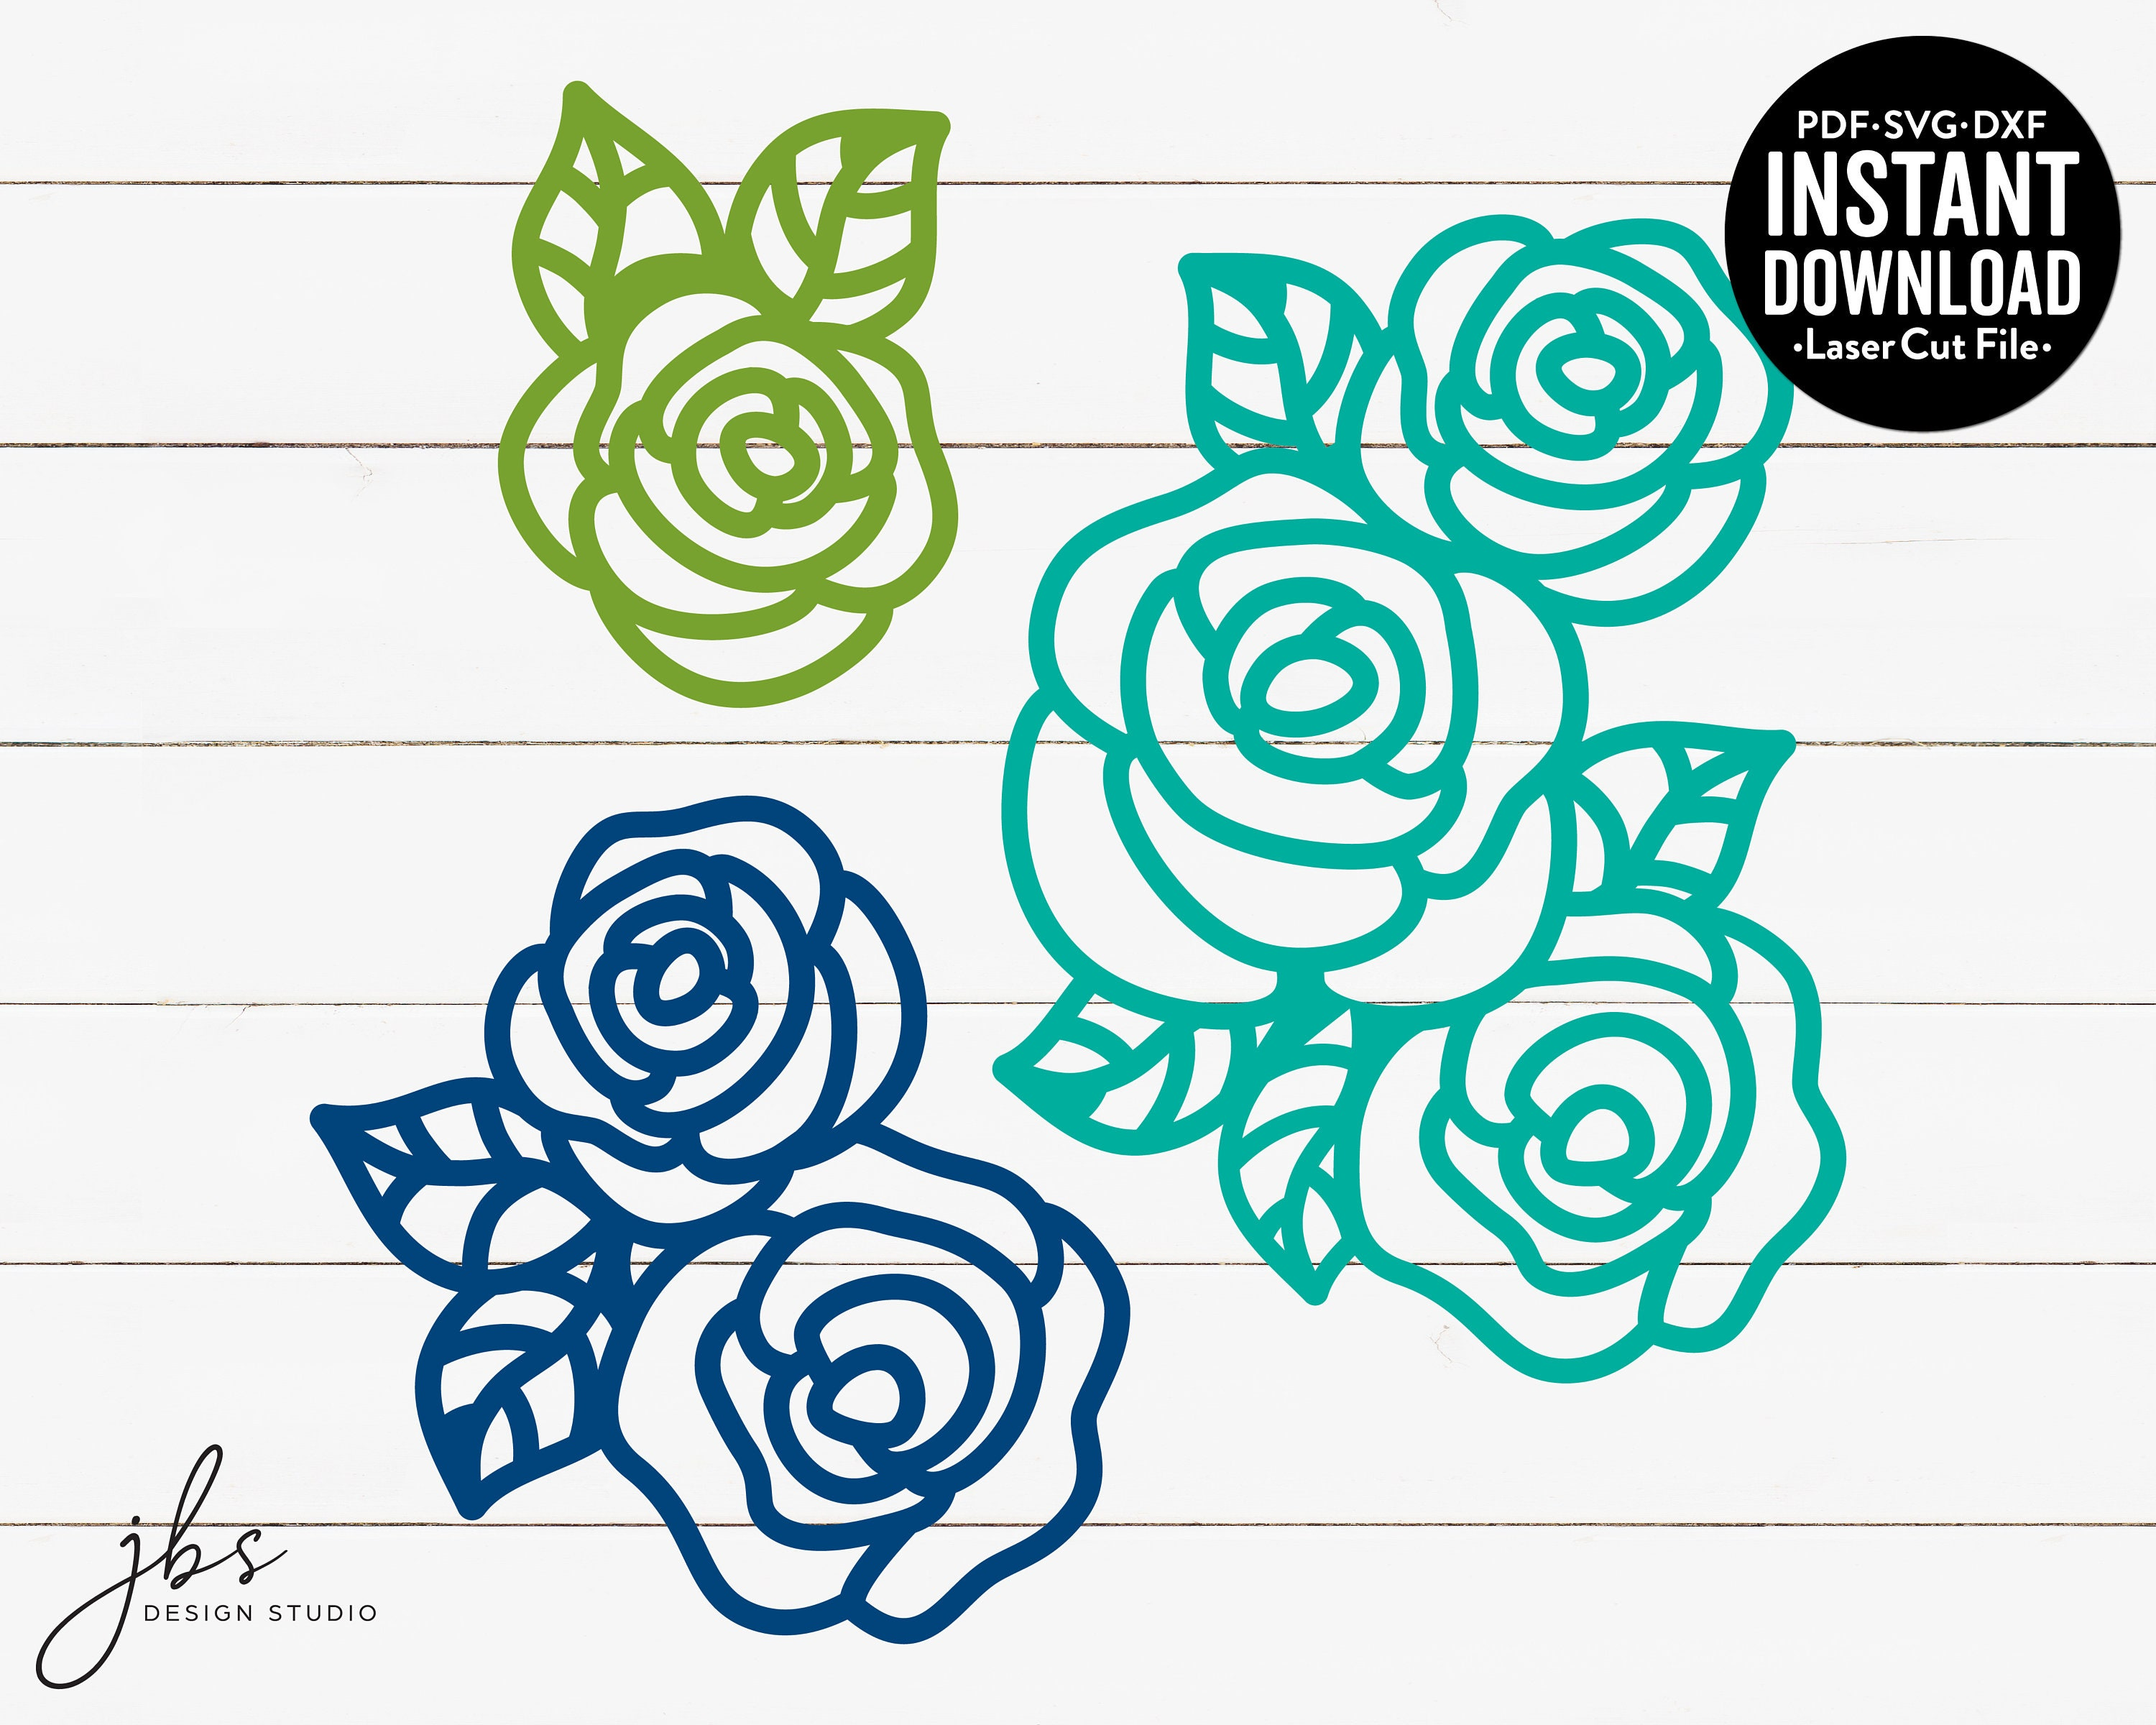 Instant Download Even Busy Bees Stop And Smell The Roses Cut File SVGDXFPDF Laser Cut File